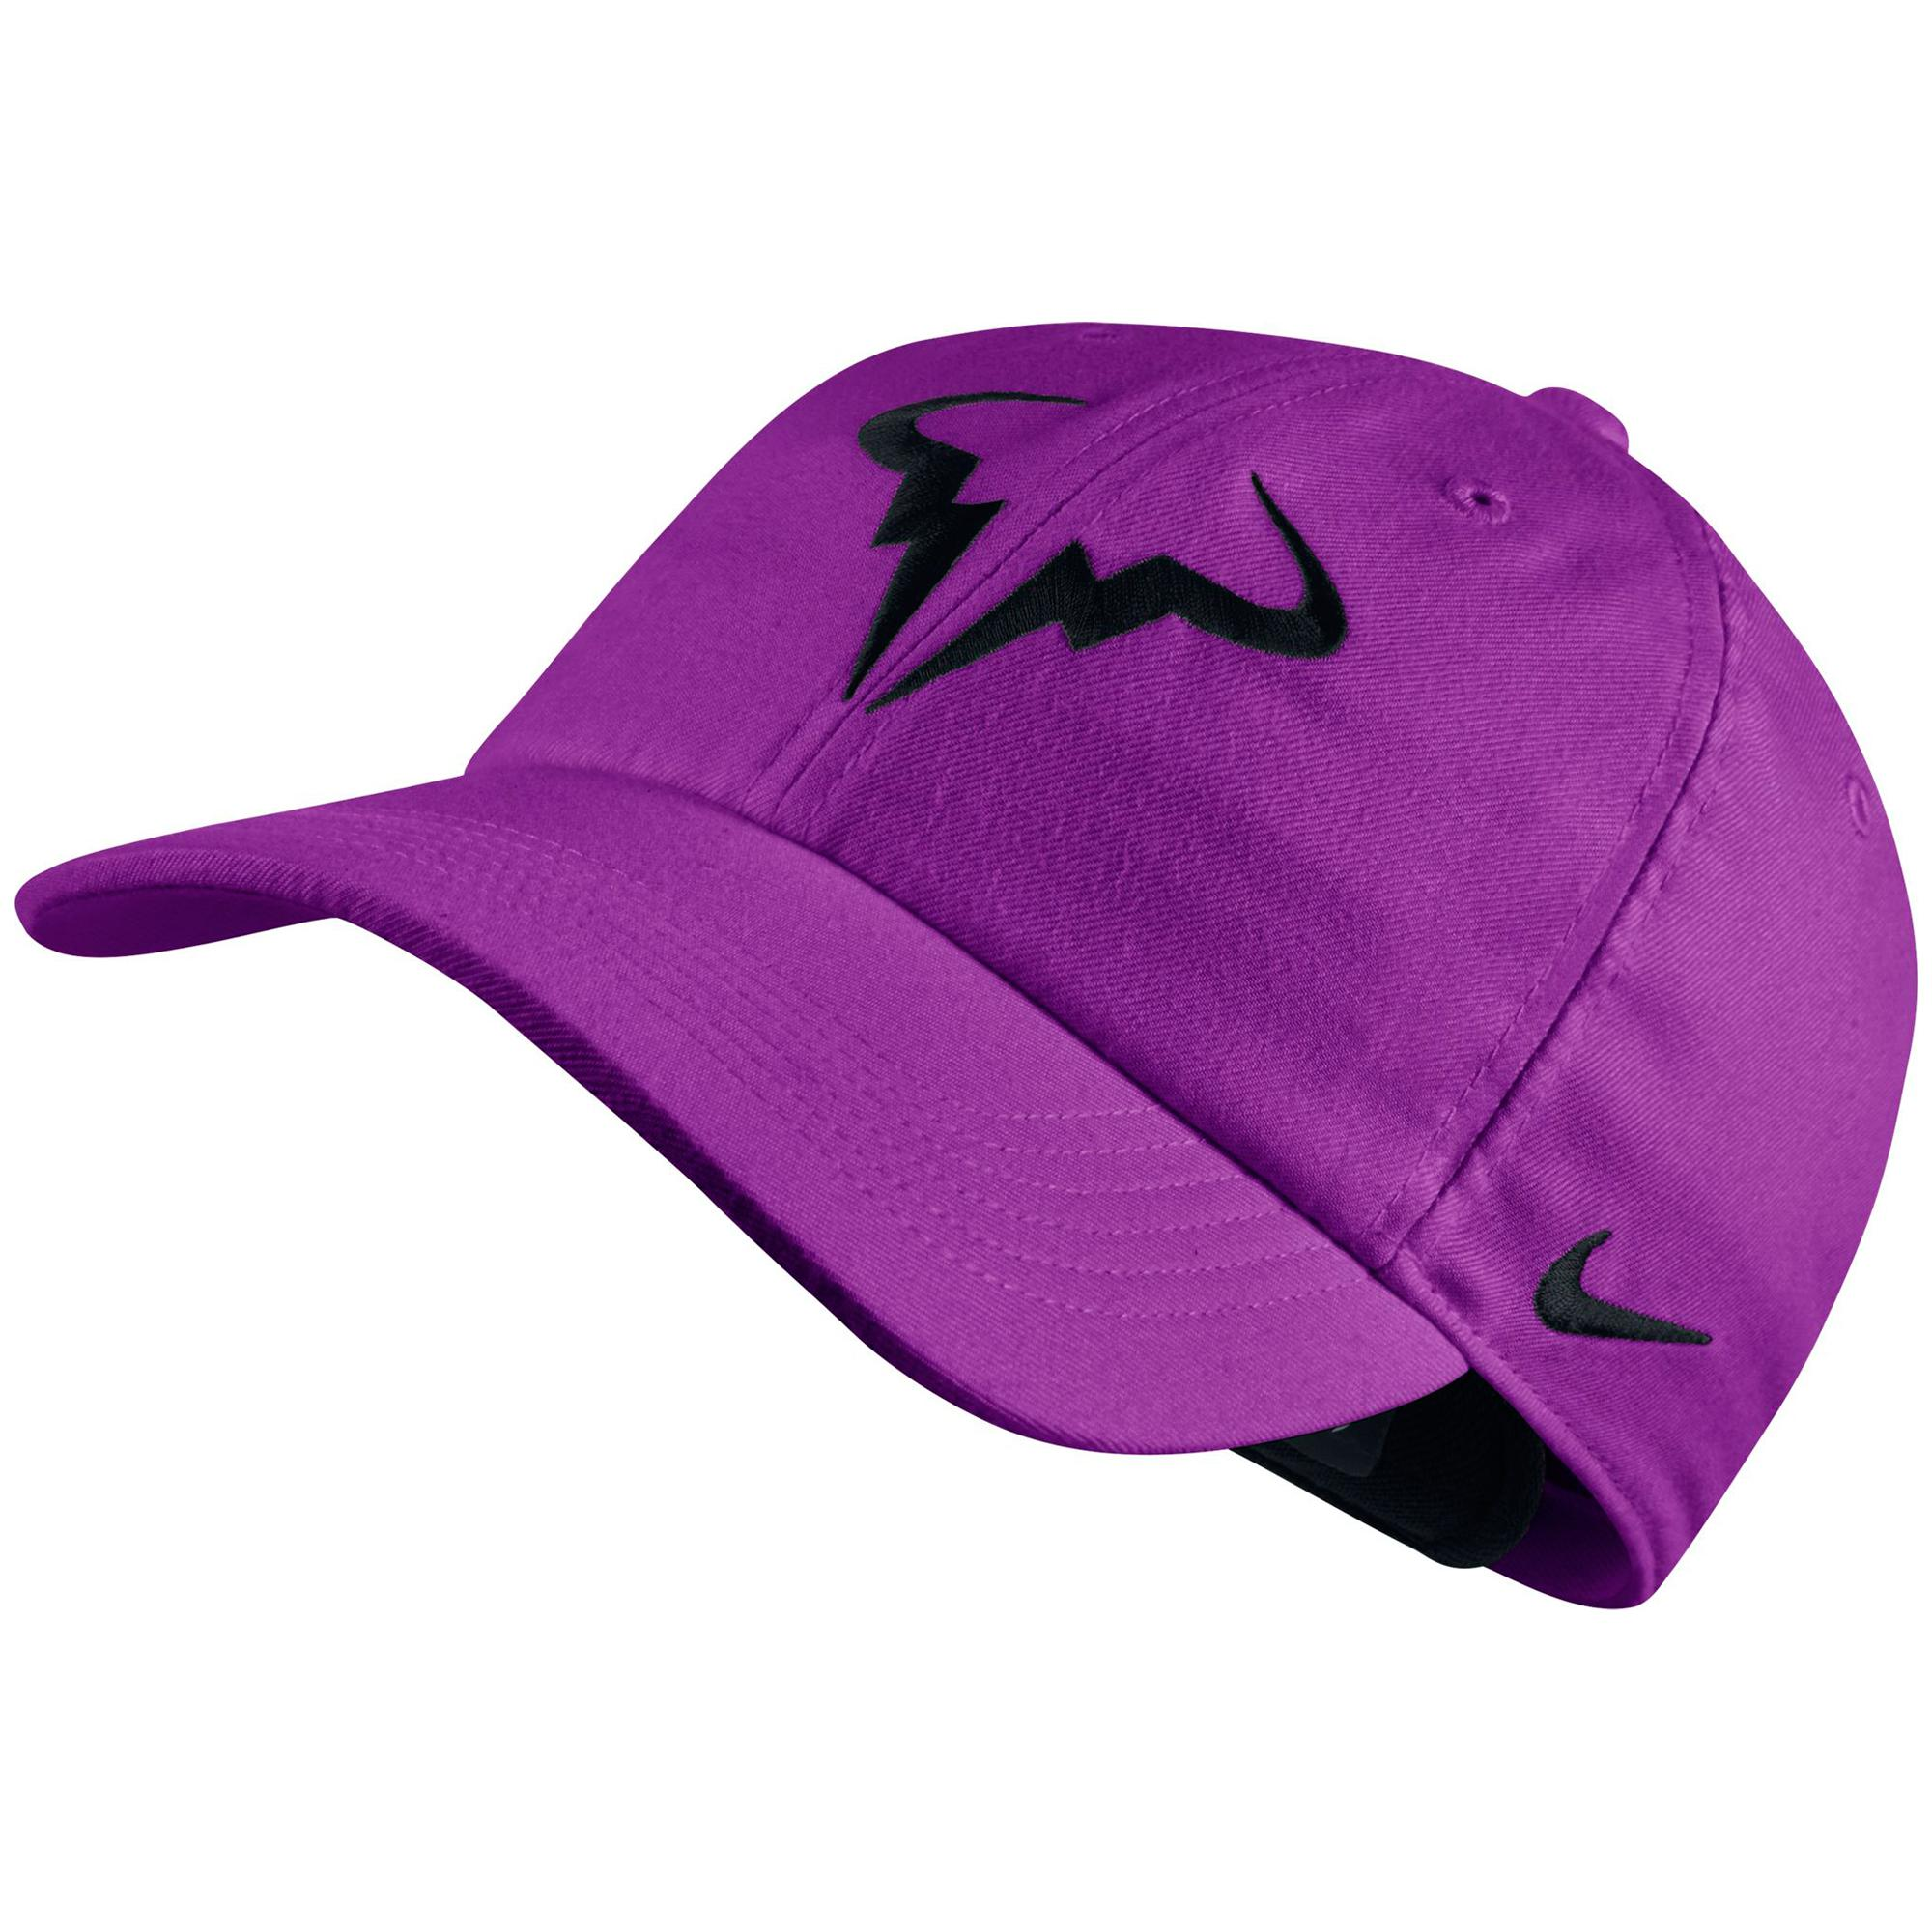 66dc1ad0 Nike Rafa AeroBill H86 Adjustable Cap - Vivid Purple - Tennisnuts.com